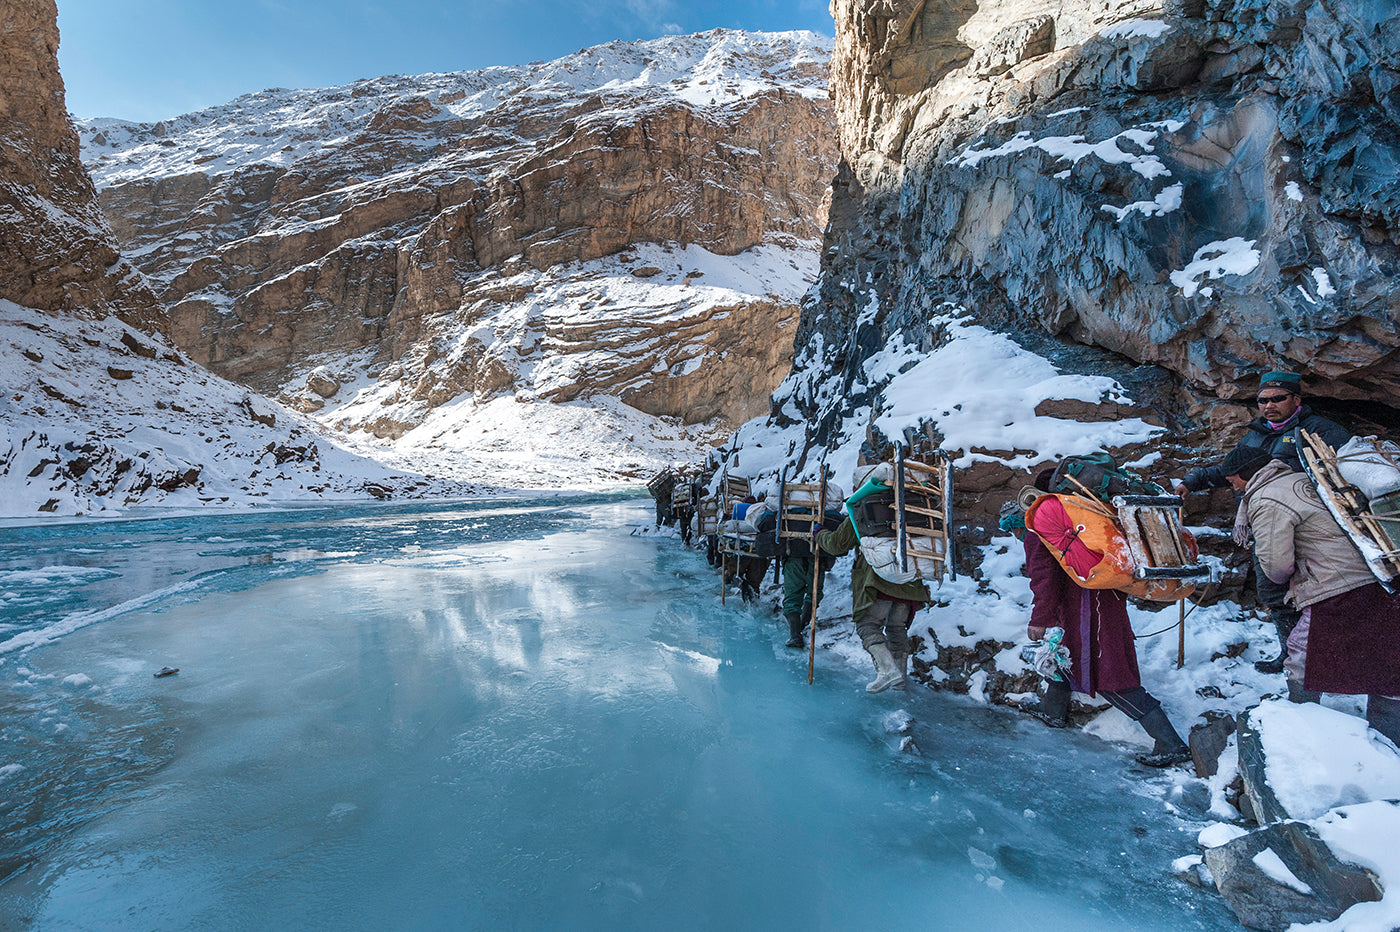 People hiking on the Chadar Trek along the frozen Zanskar River in northern India. (Photo: Manish Lakhani)